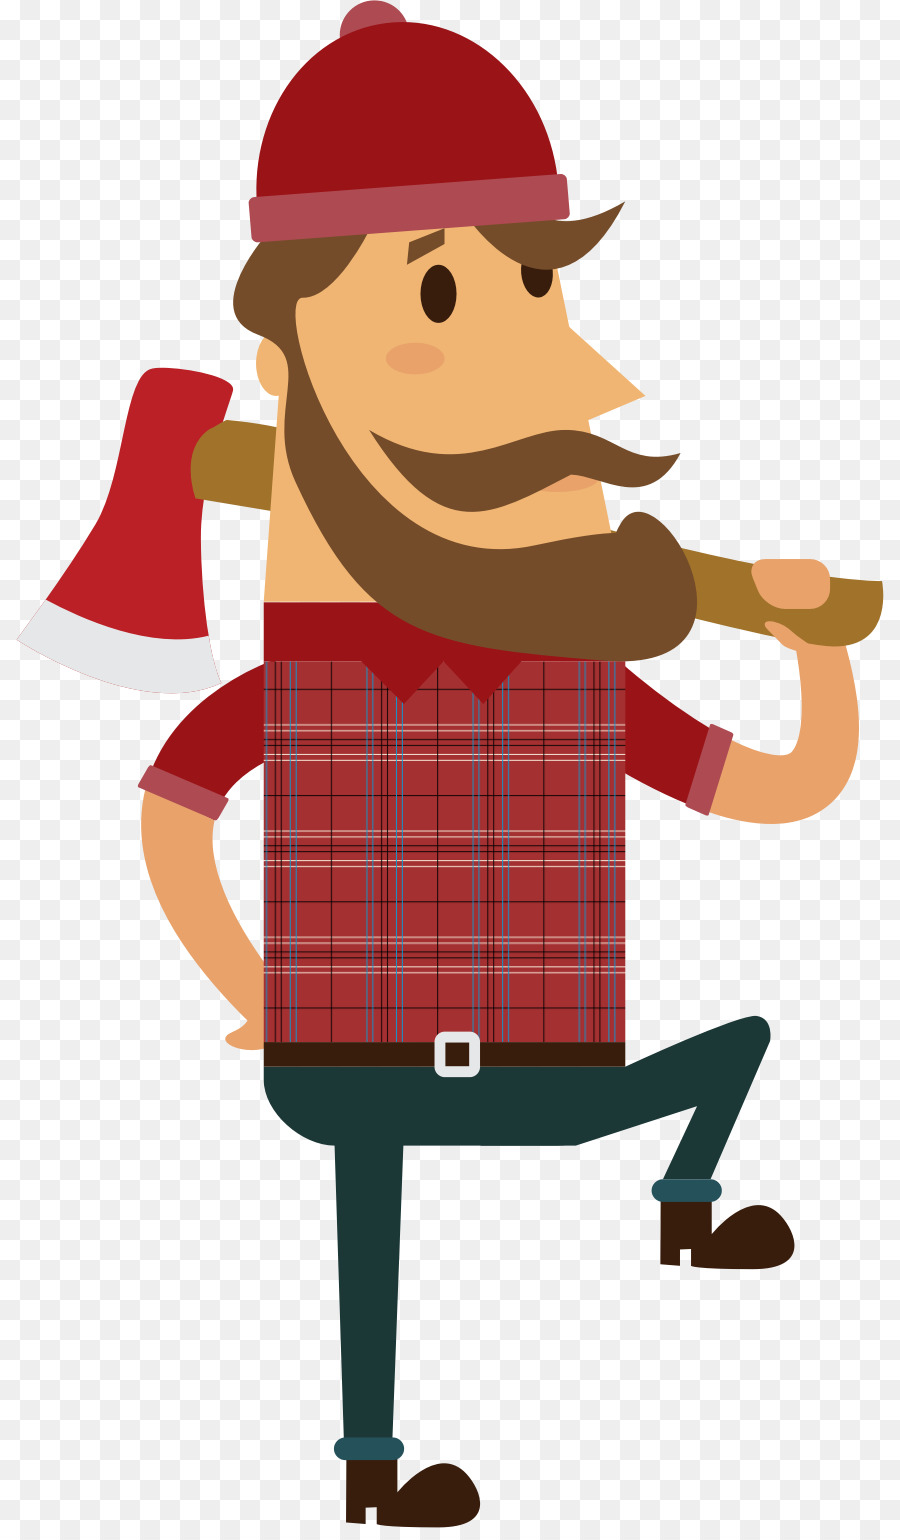 Woodcutter clipart png clip art royalty free stock Wood Background png download - 868*1528 - Free Transparent ... clip art royalty free stock